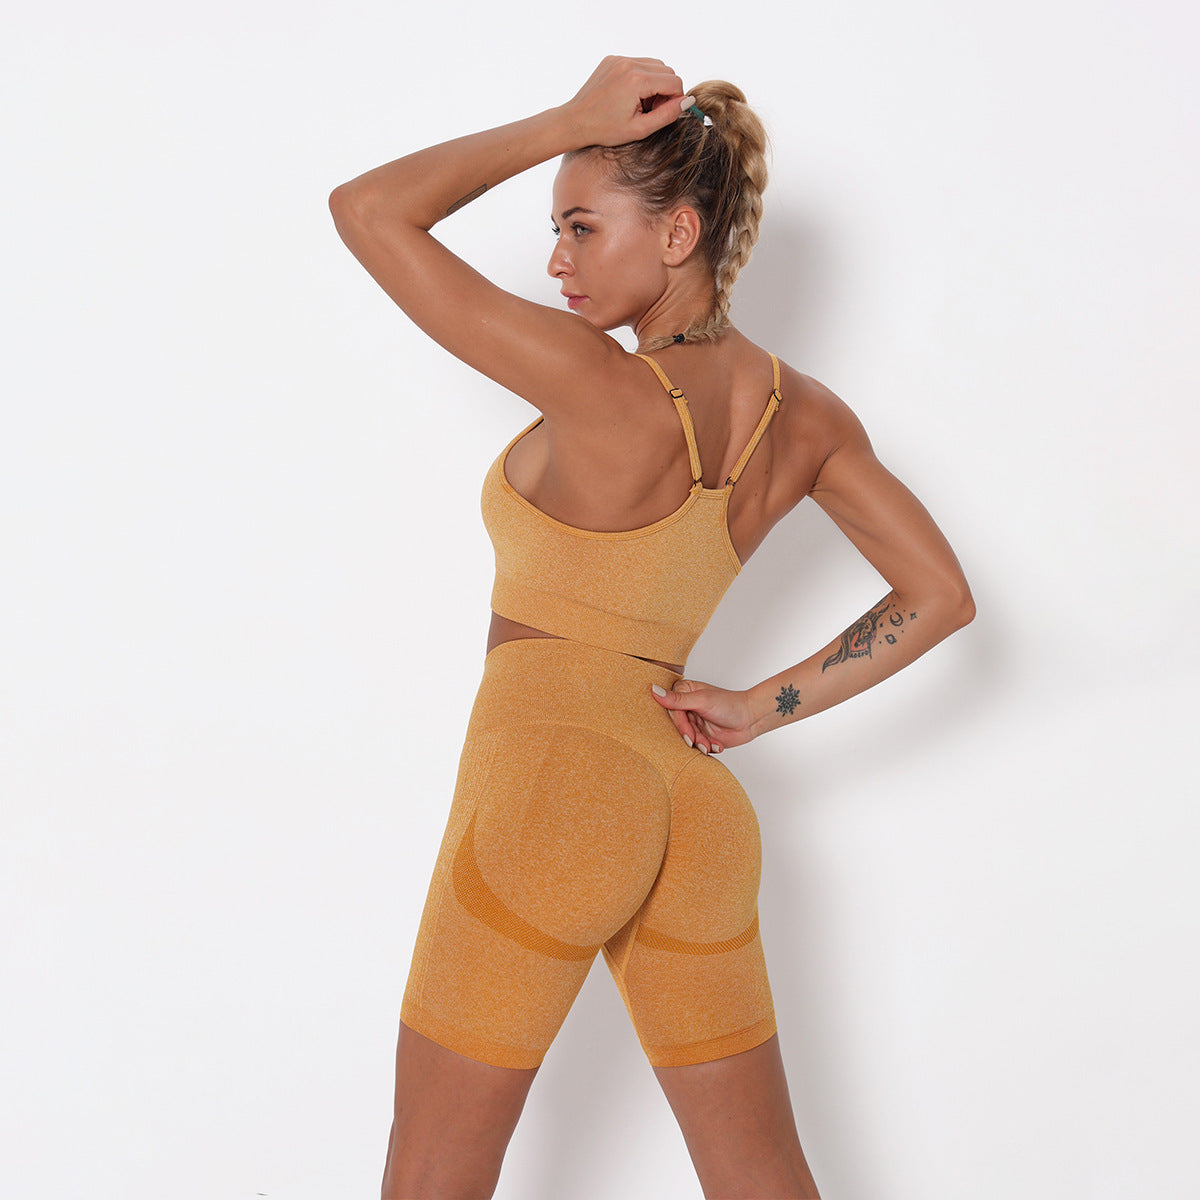 2020 Women Seamless Peach Hip Yoga Suit Short Pant Running Suit Fitness Suit Sports Bra YS-056